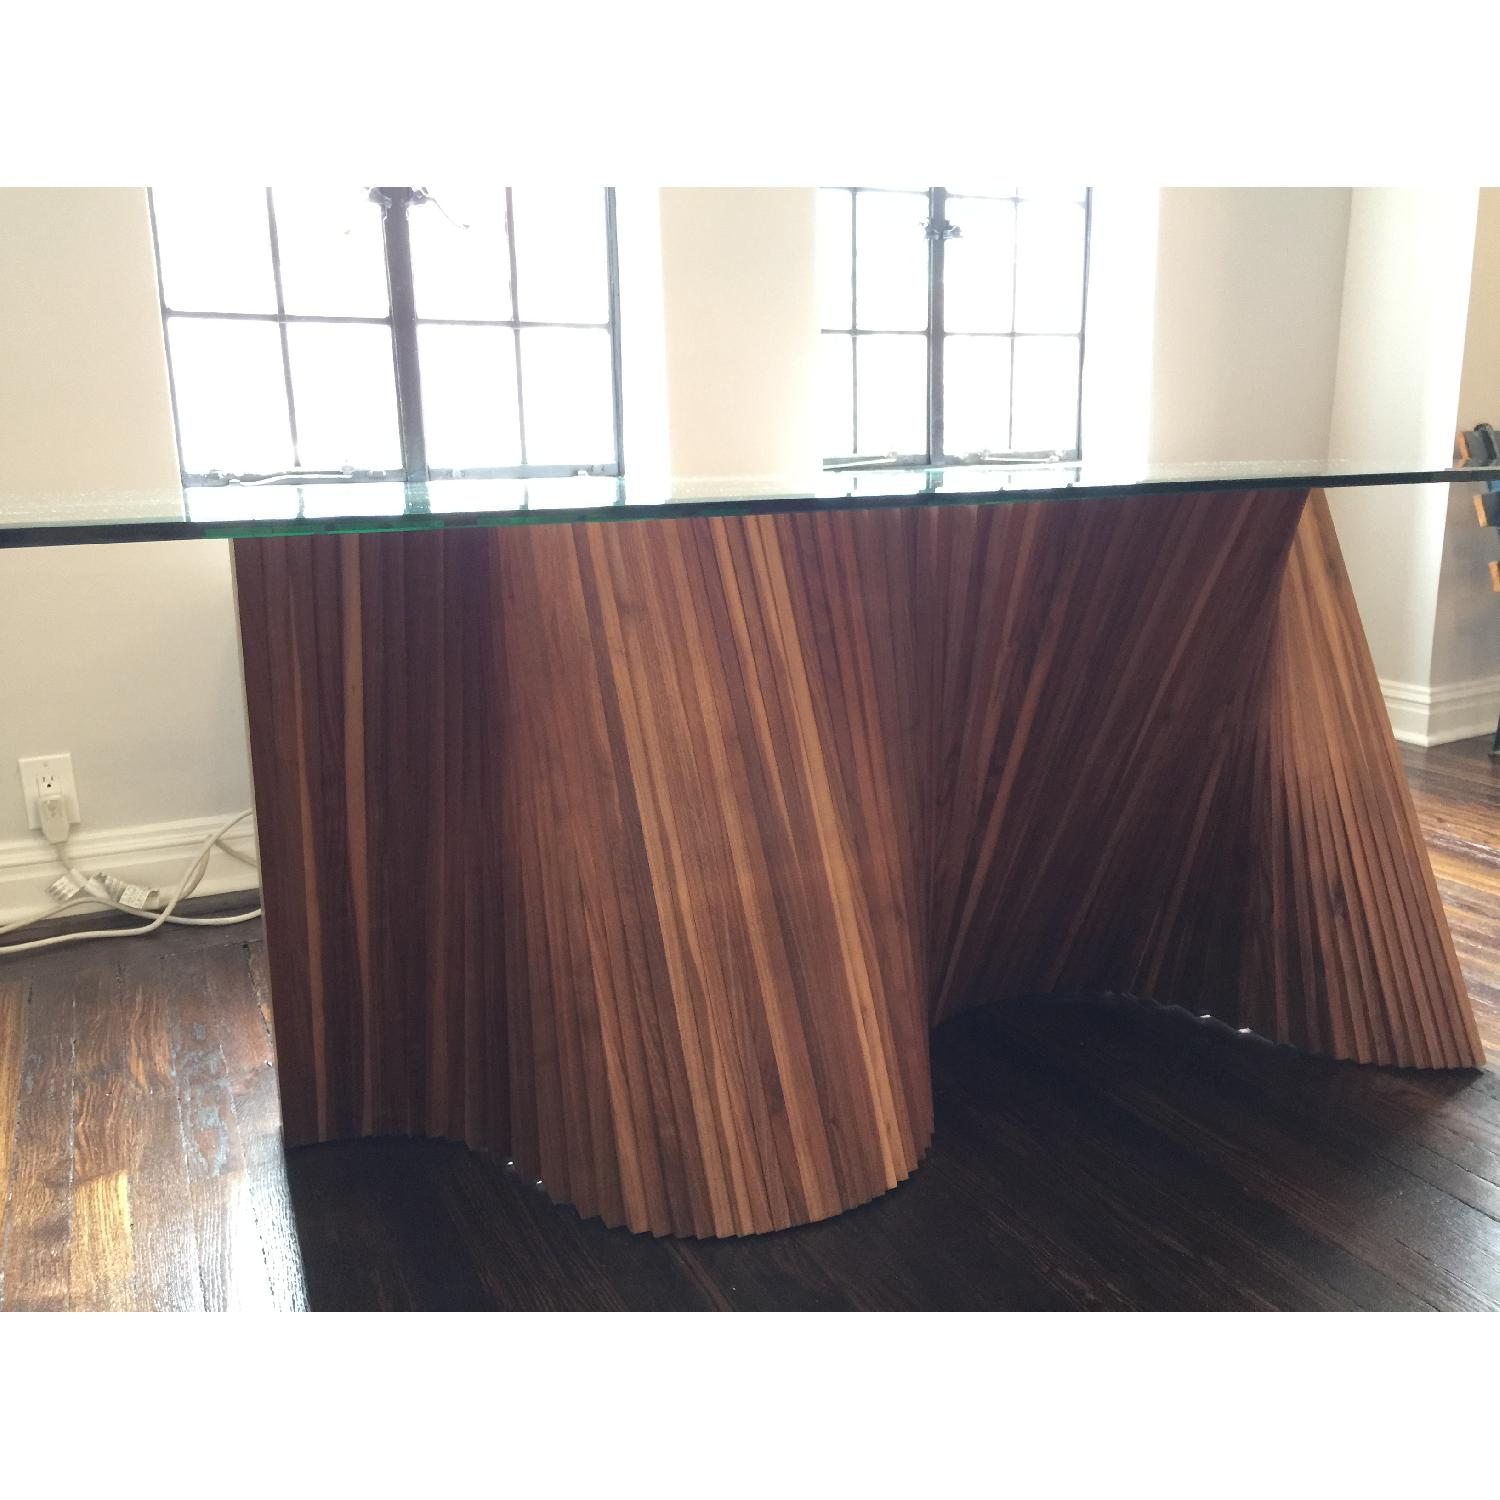 Kenneth Cobonpue Wave Dining Table - image-2